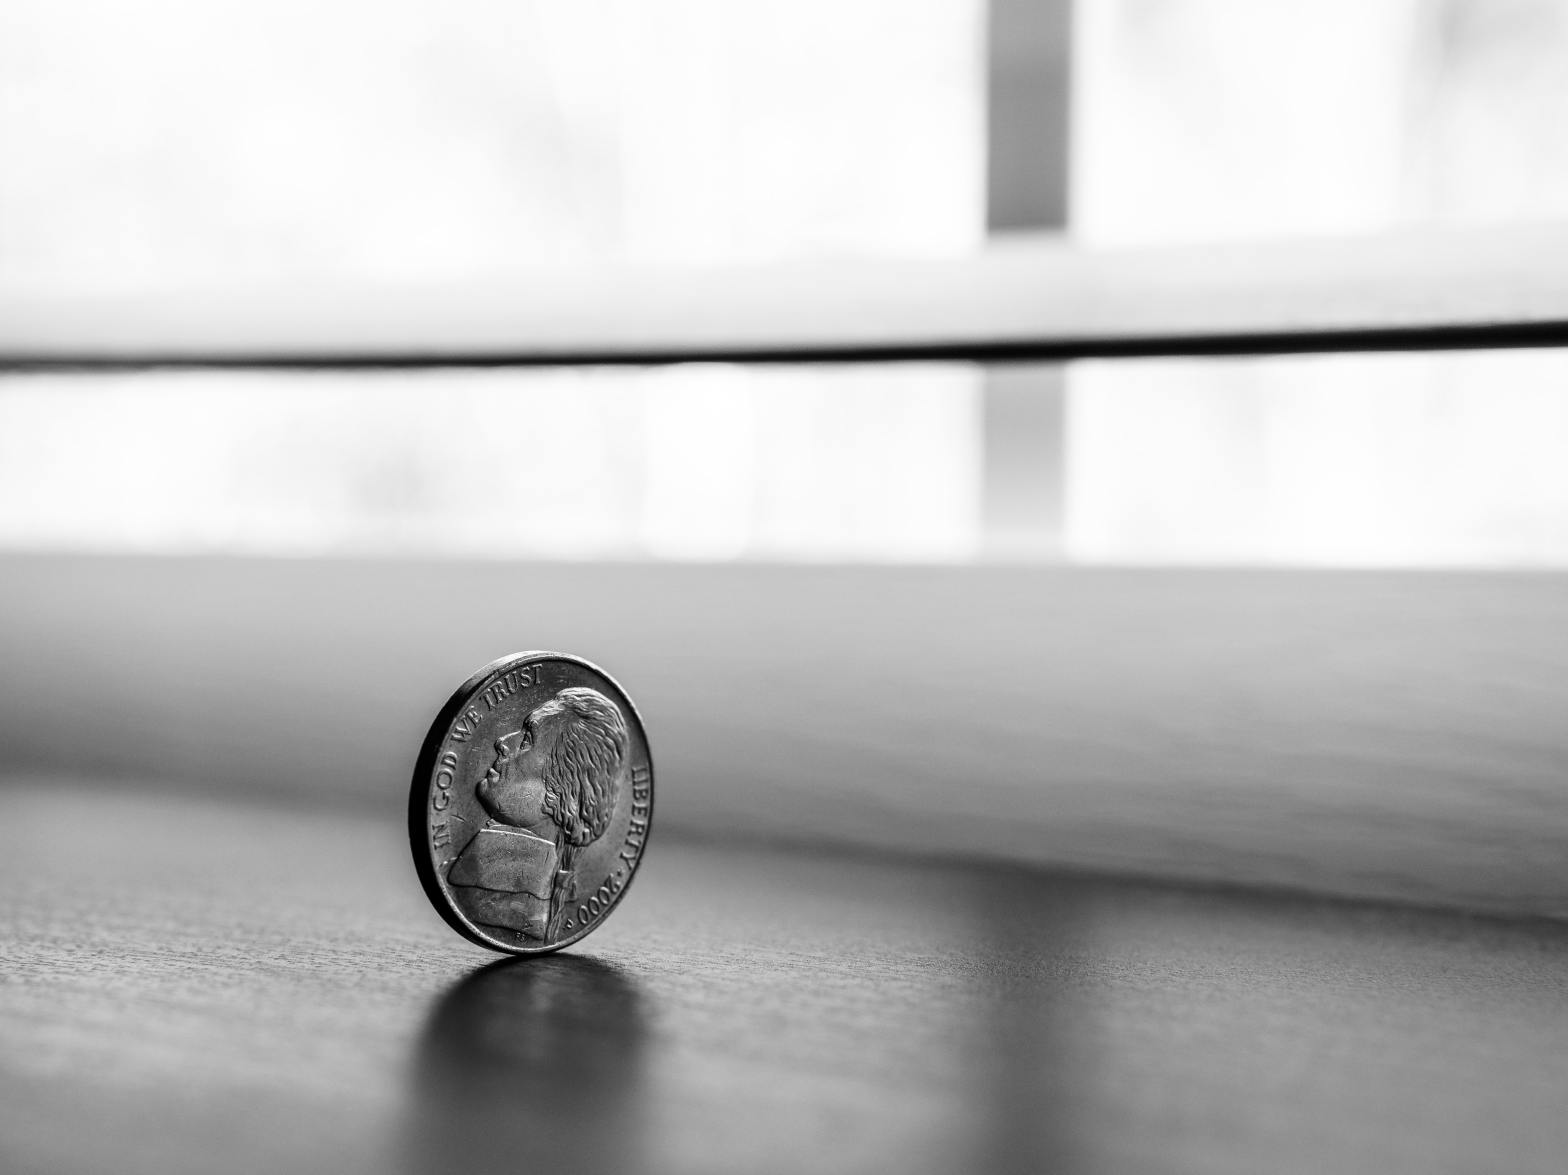 Nickel coin on its edge